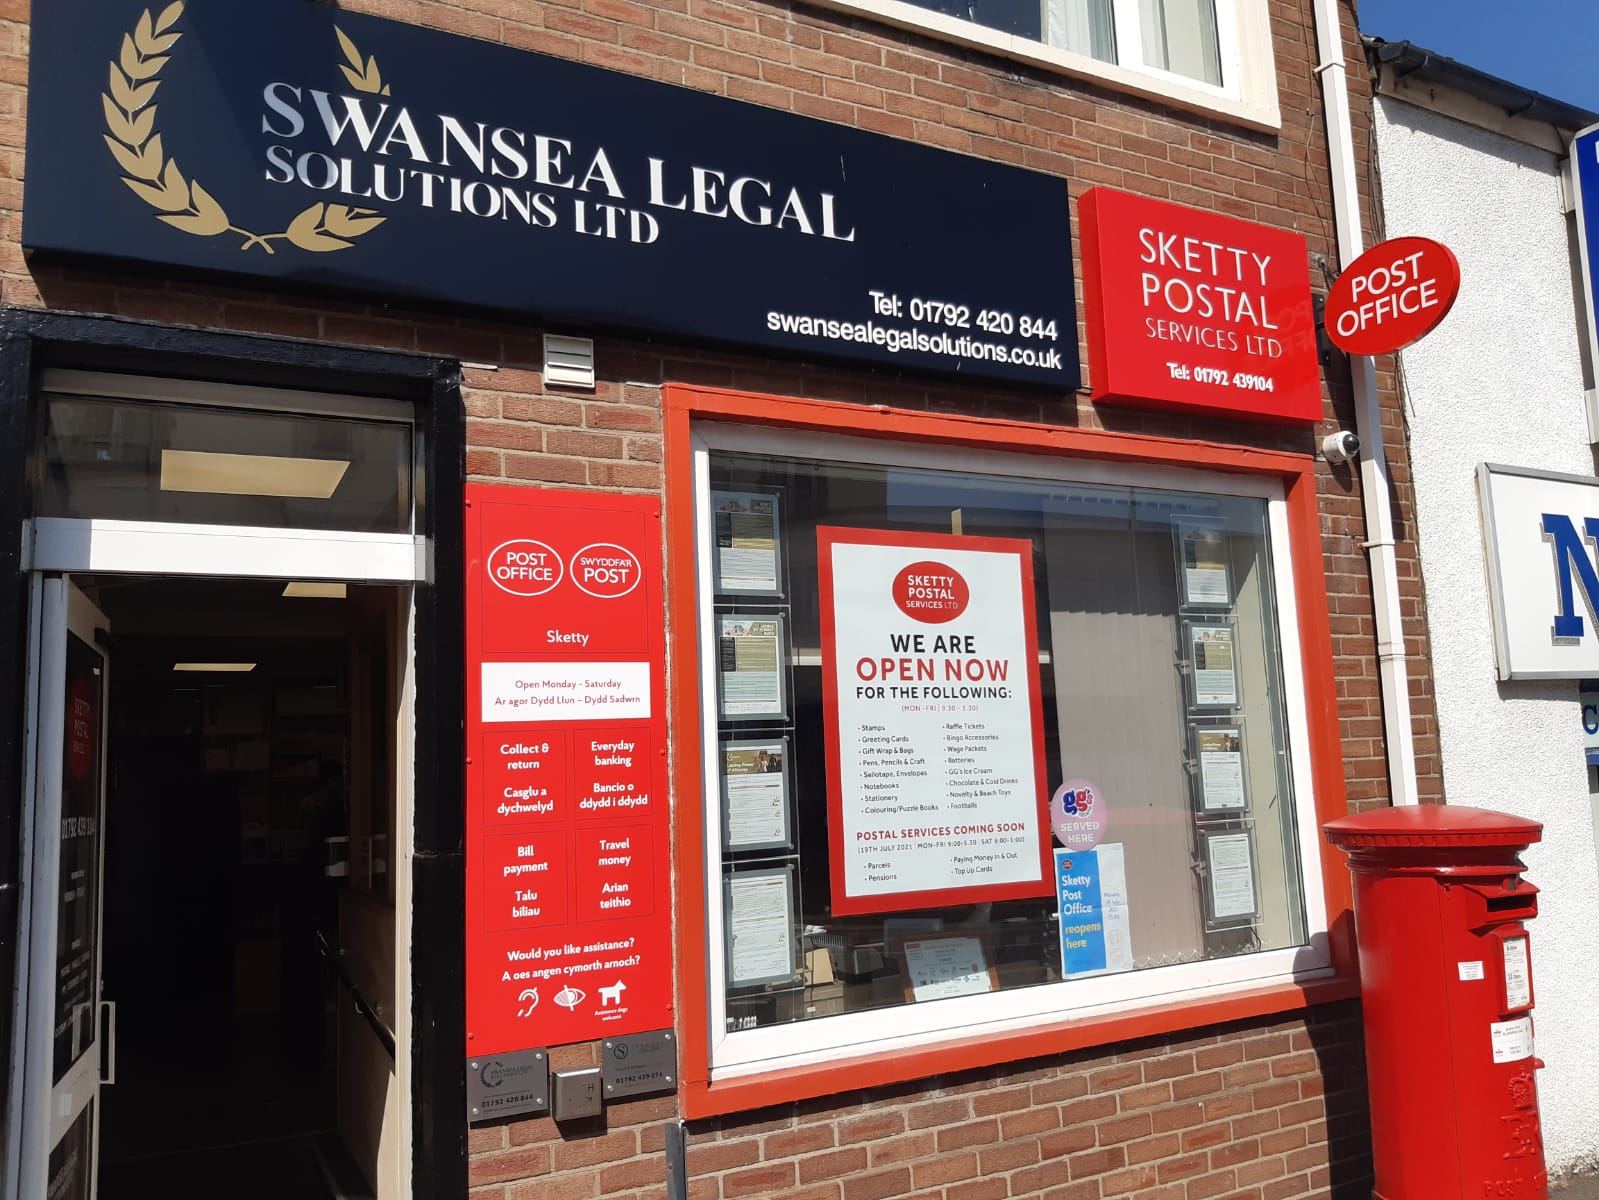 POST OFFICE IN SKETTY RE-OPENS